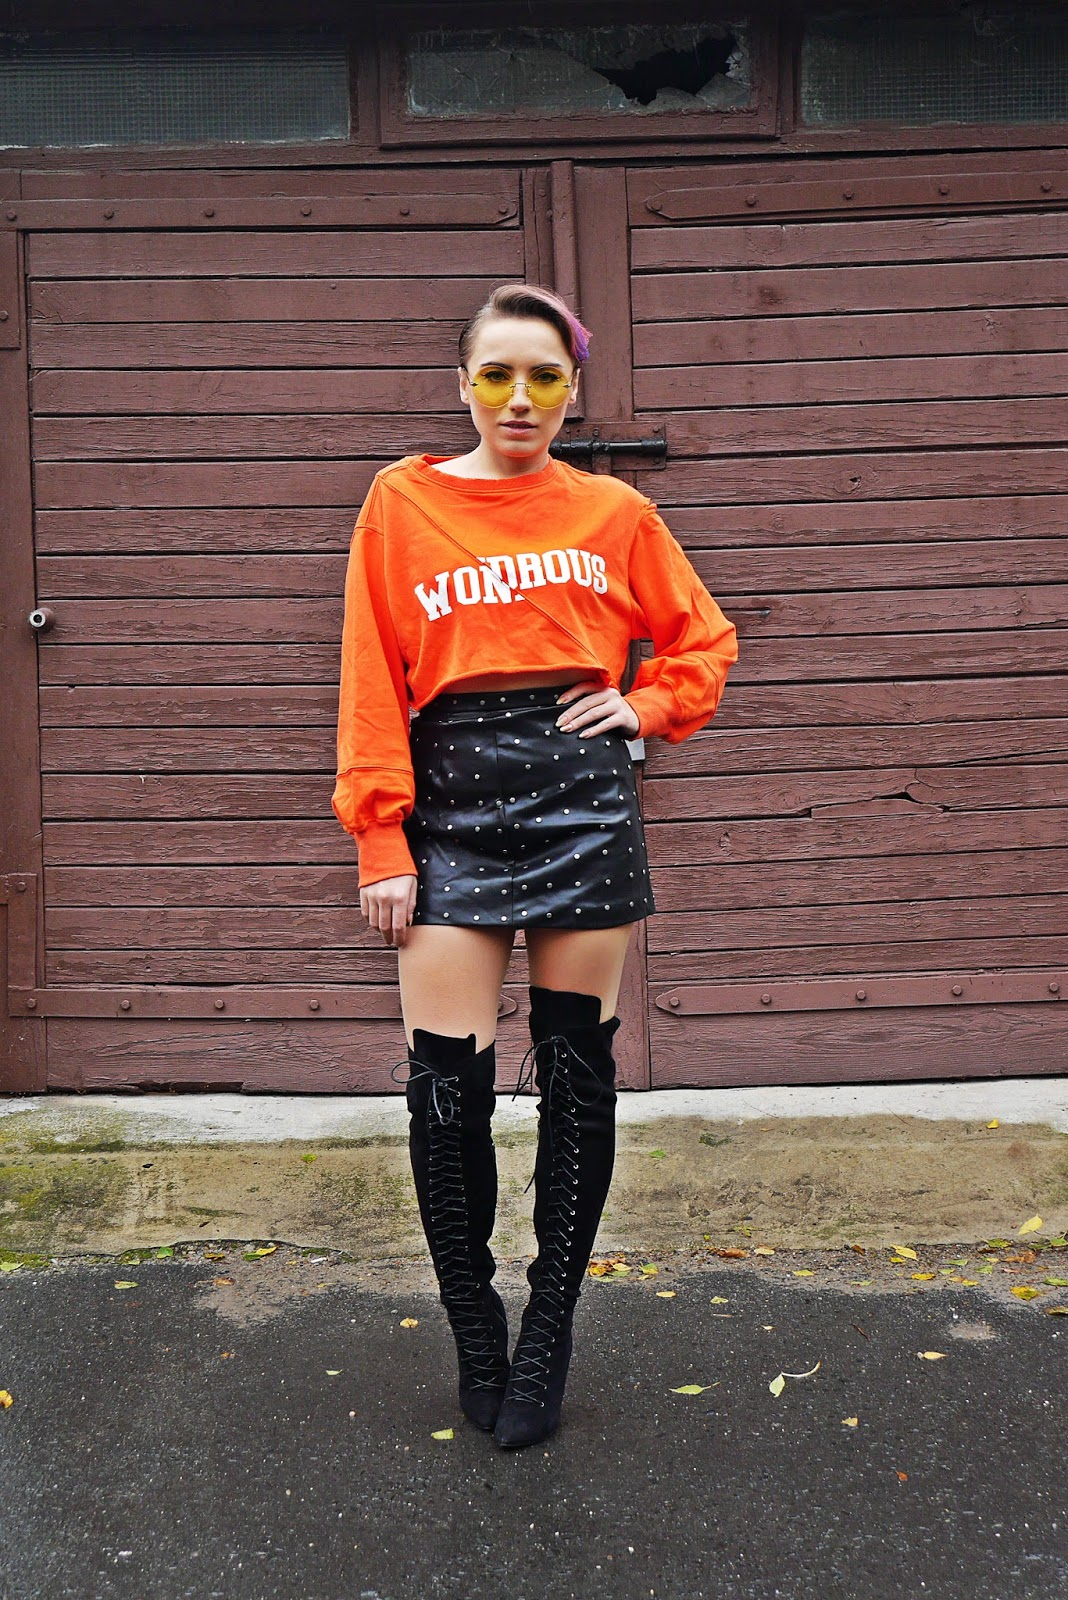 4_leather_skirt_crop_top_orange_hoodies_letter_karyn_blog_modowy_111017b